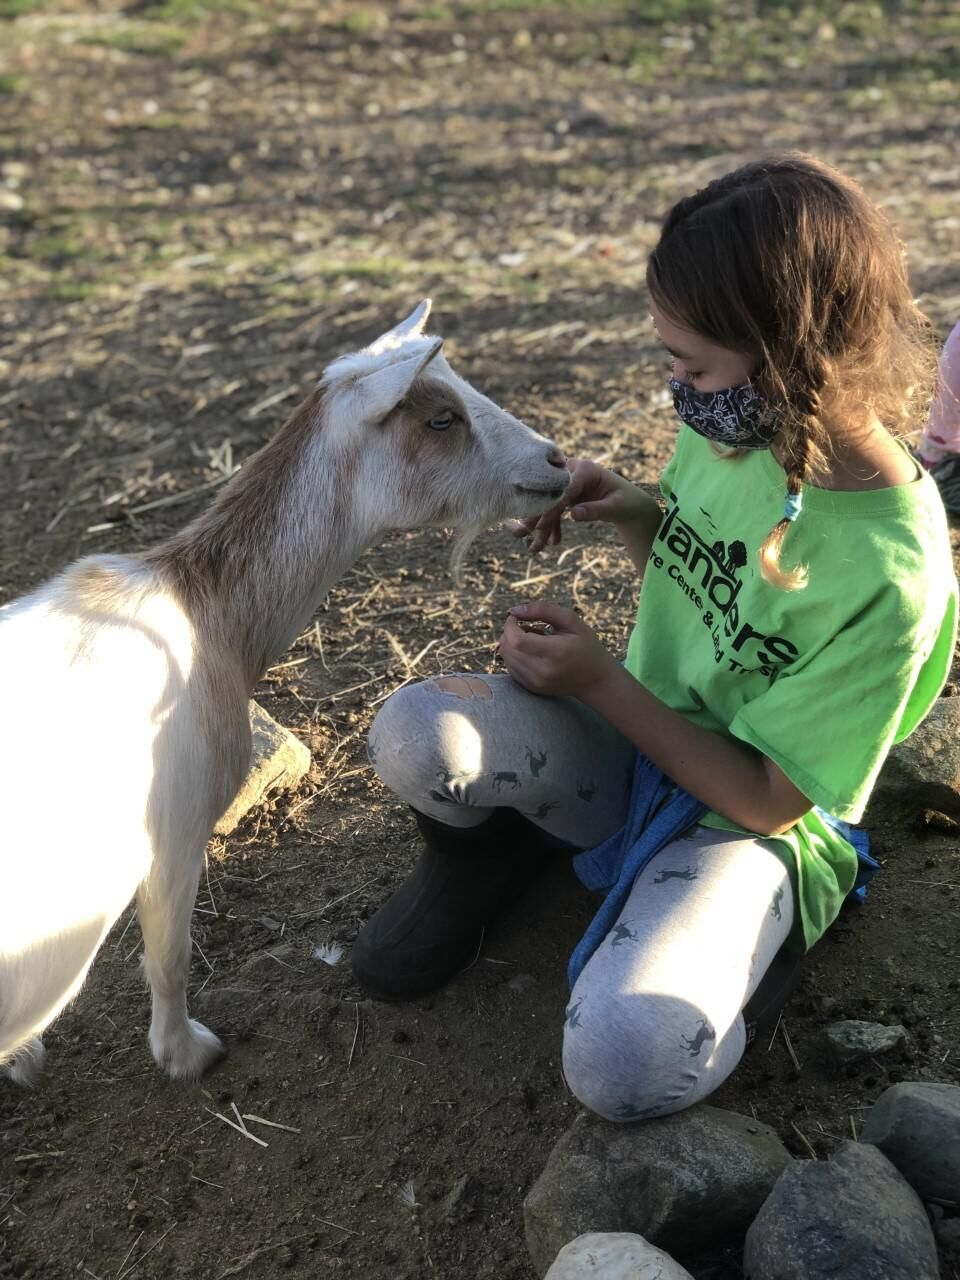 Young people learn life skills in new Woodbury 4H club